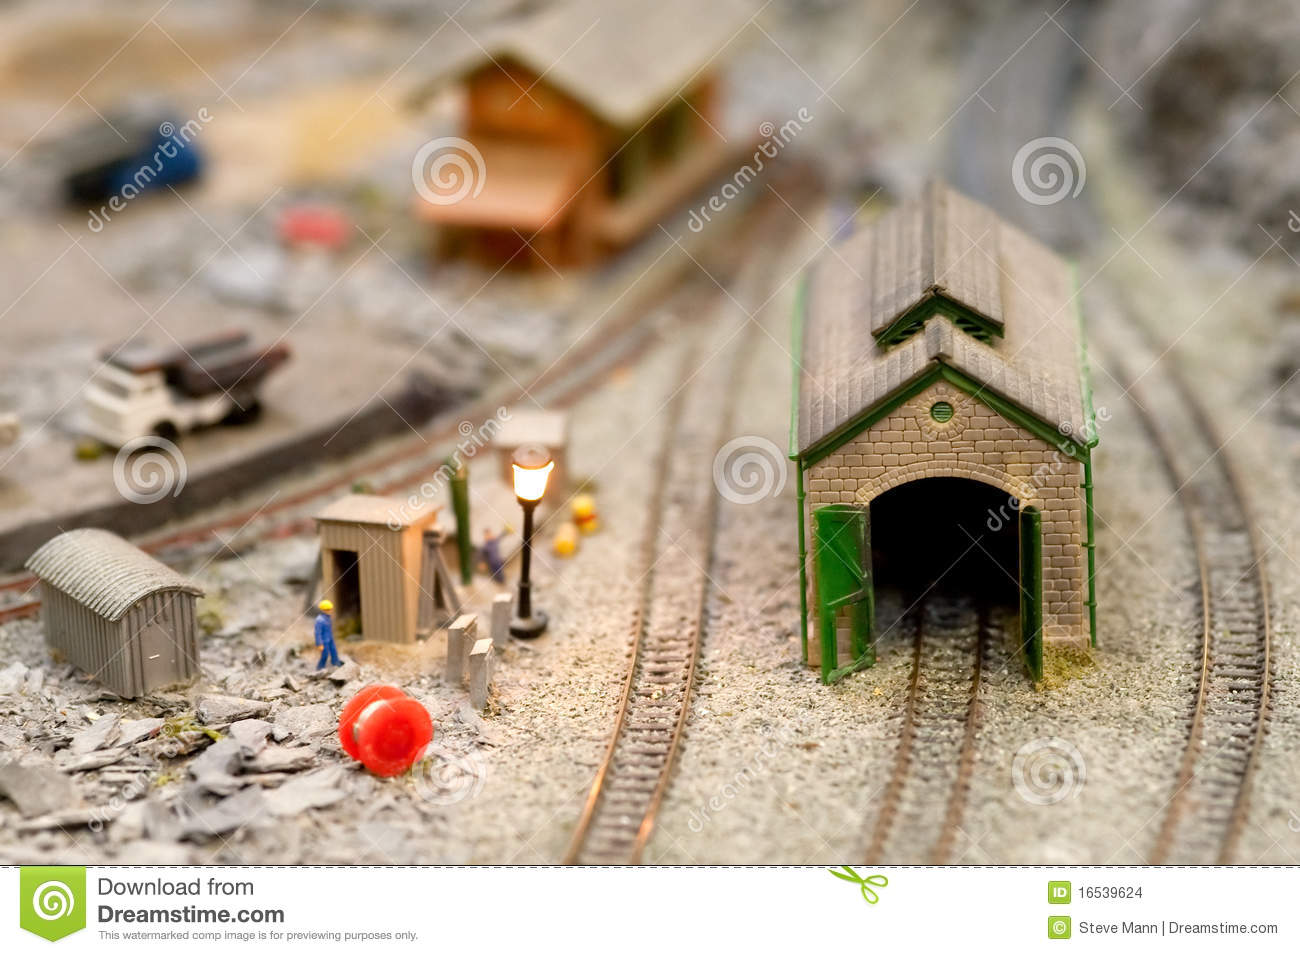 Miniature models